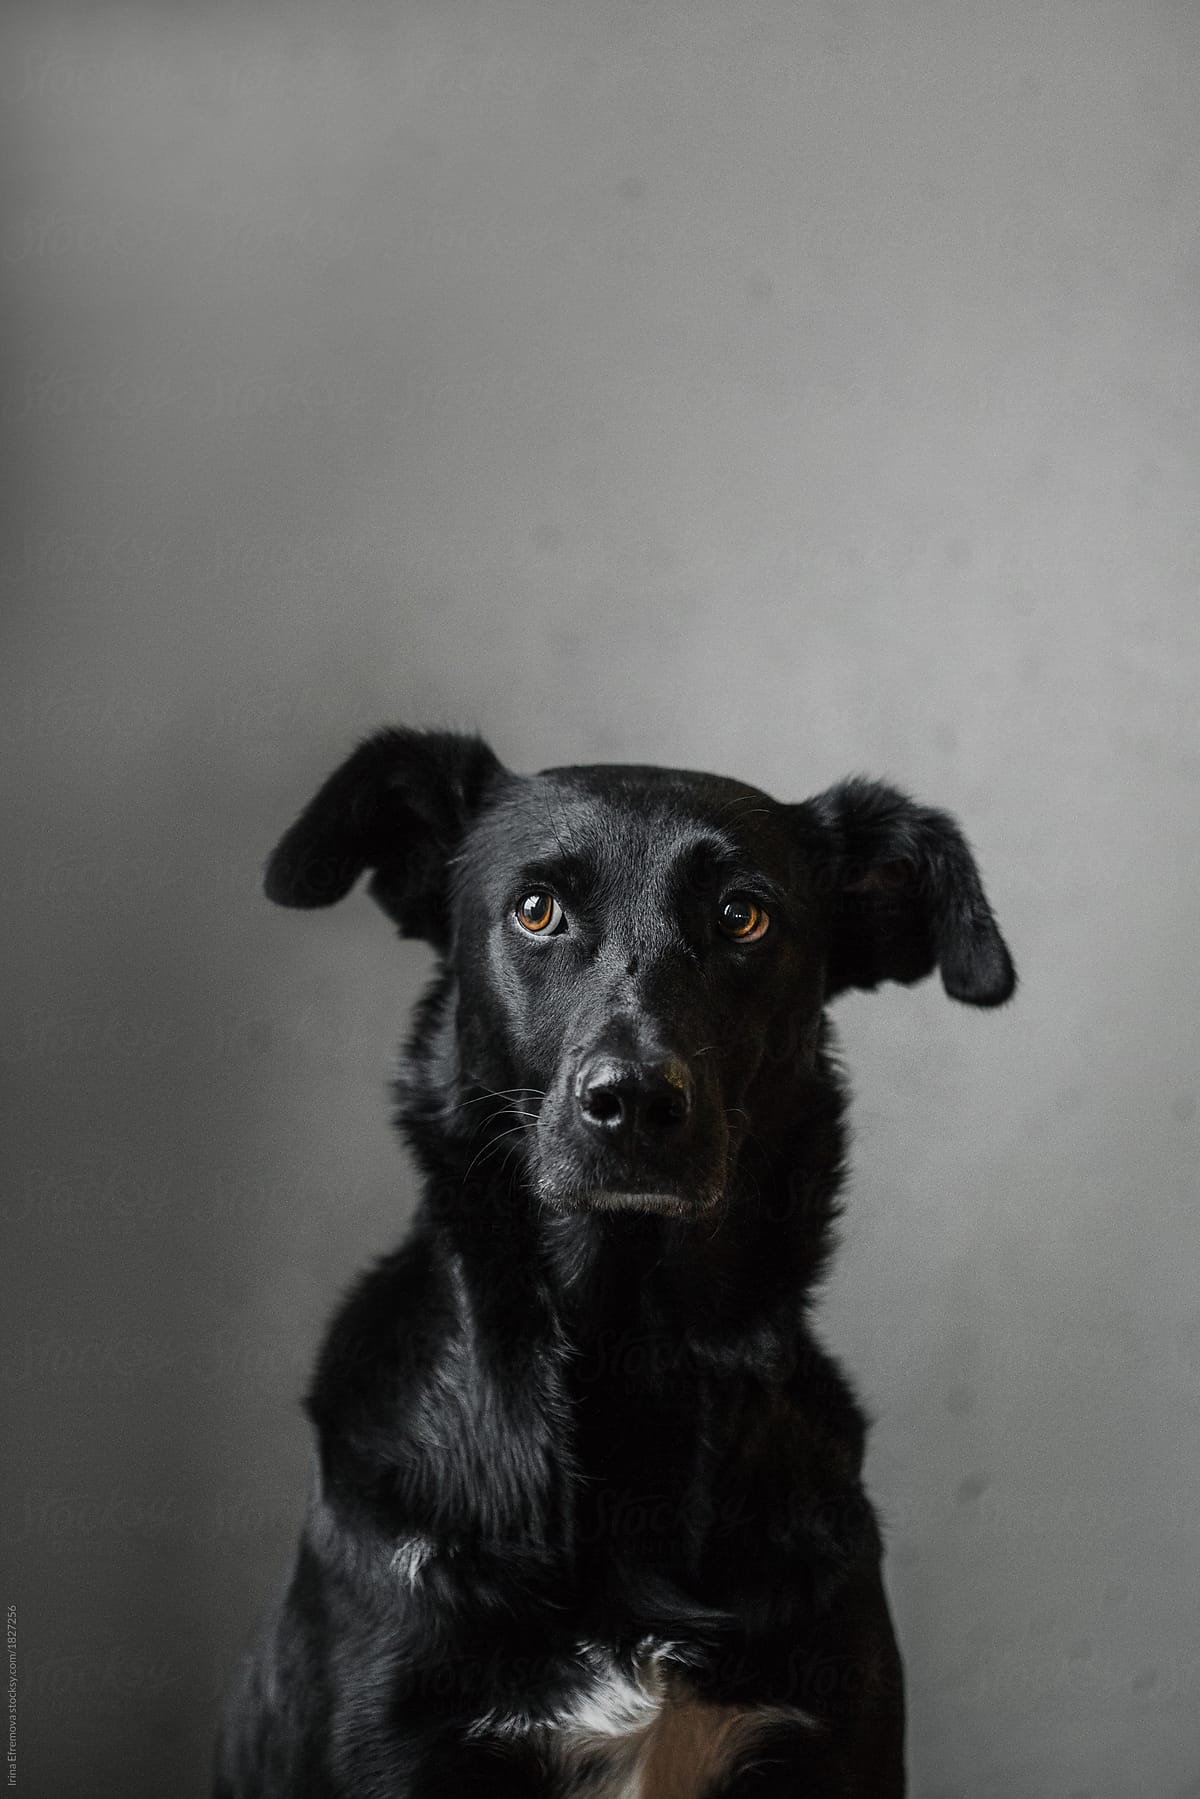 Classical portrait of a black dog with white chest